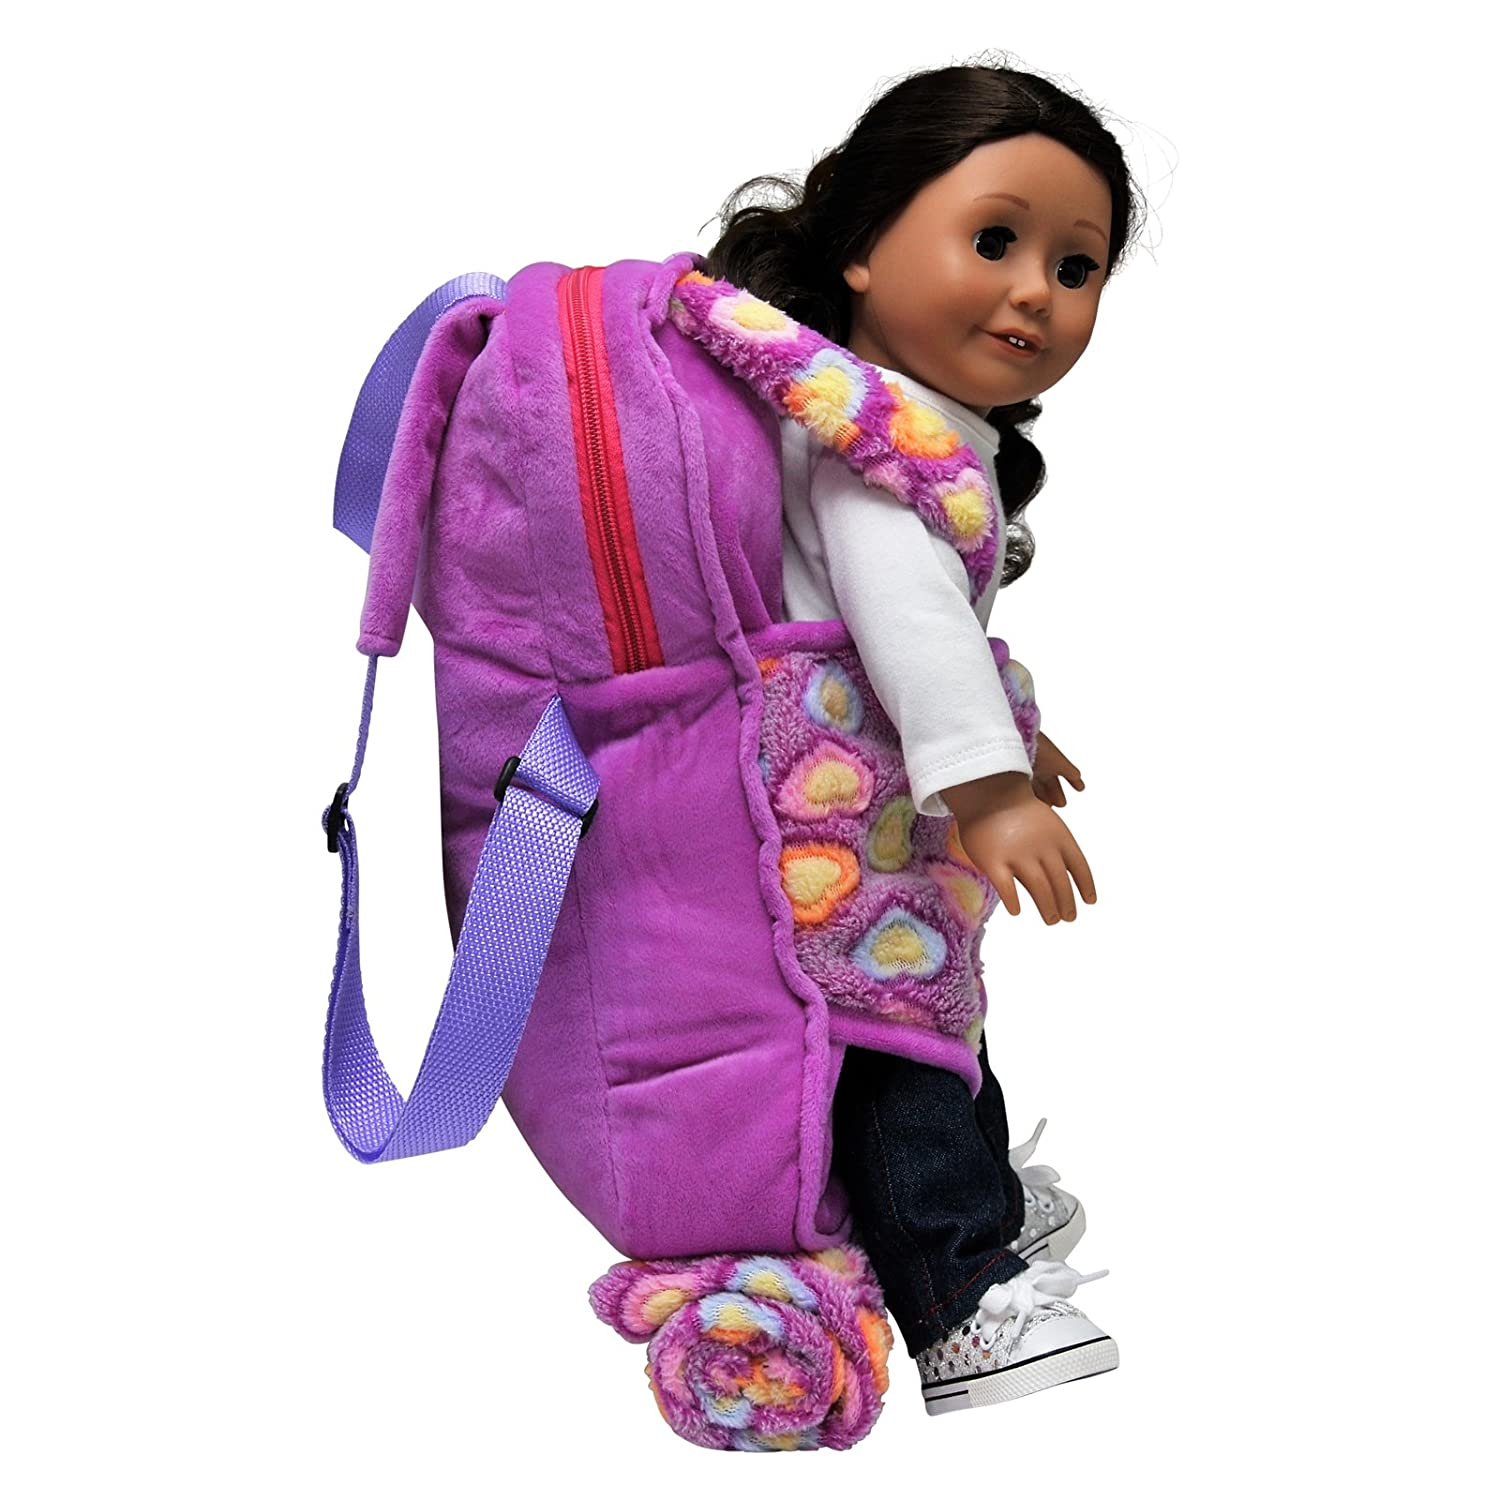 2e495357e07 Amazon.com  The Queen s Treasures Purple Soft Fancy Baby Doll Backpack  Carrier and Sleeping Bag for 18 inch and 15 inch Dolls.